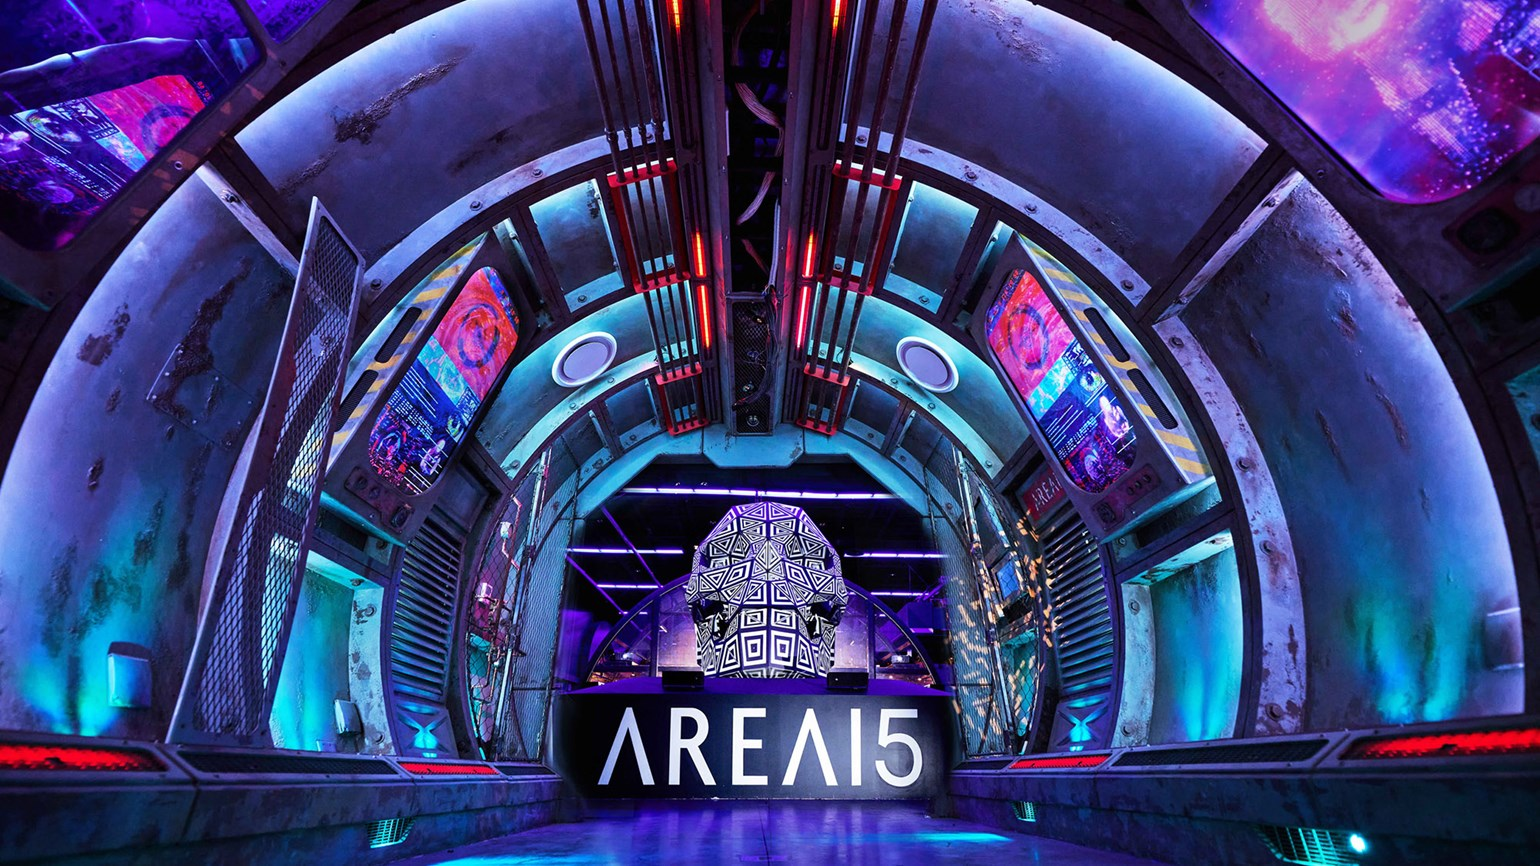 Area15 opens near Las Vegas Strip